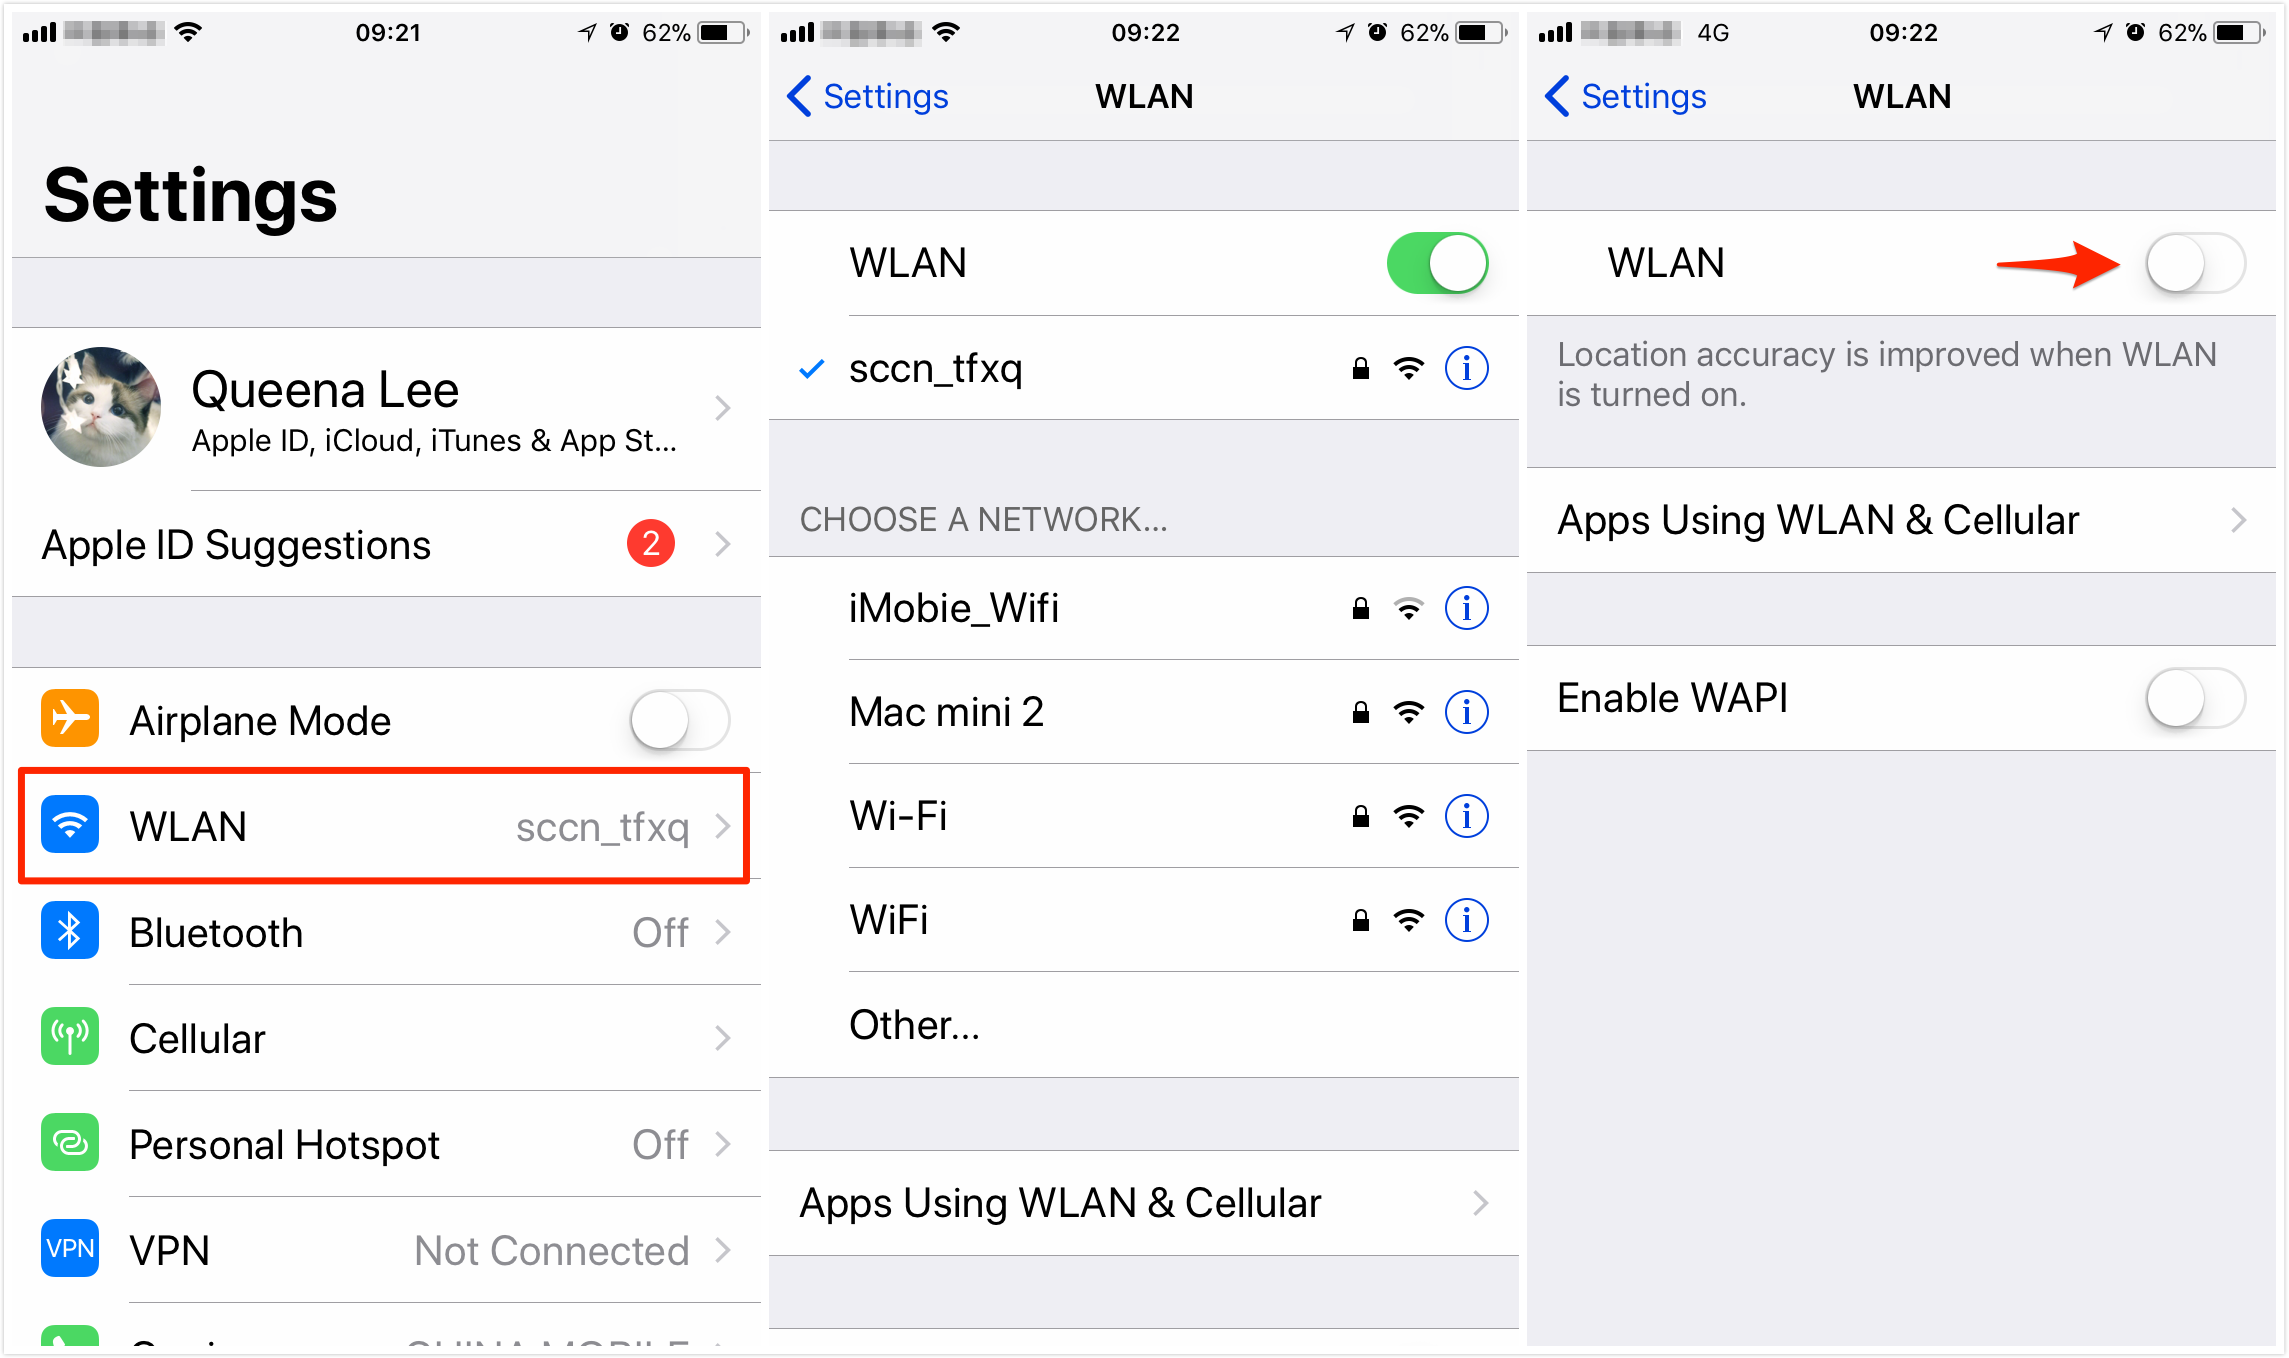 How to Turn off WiFi iOS 13 Beta/12/11